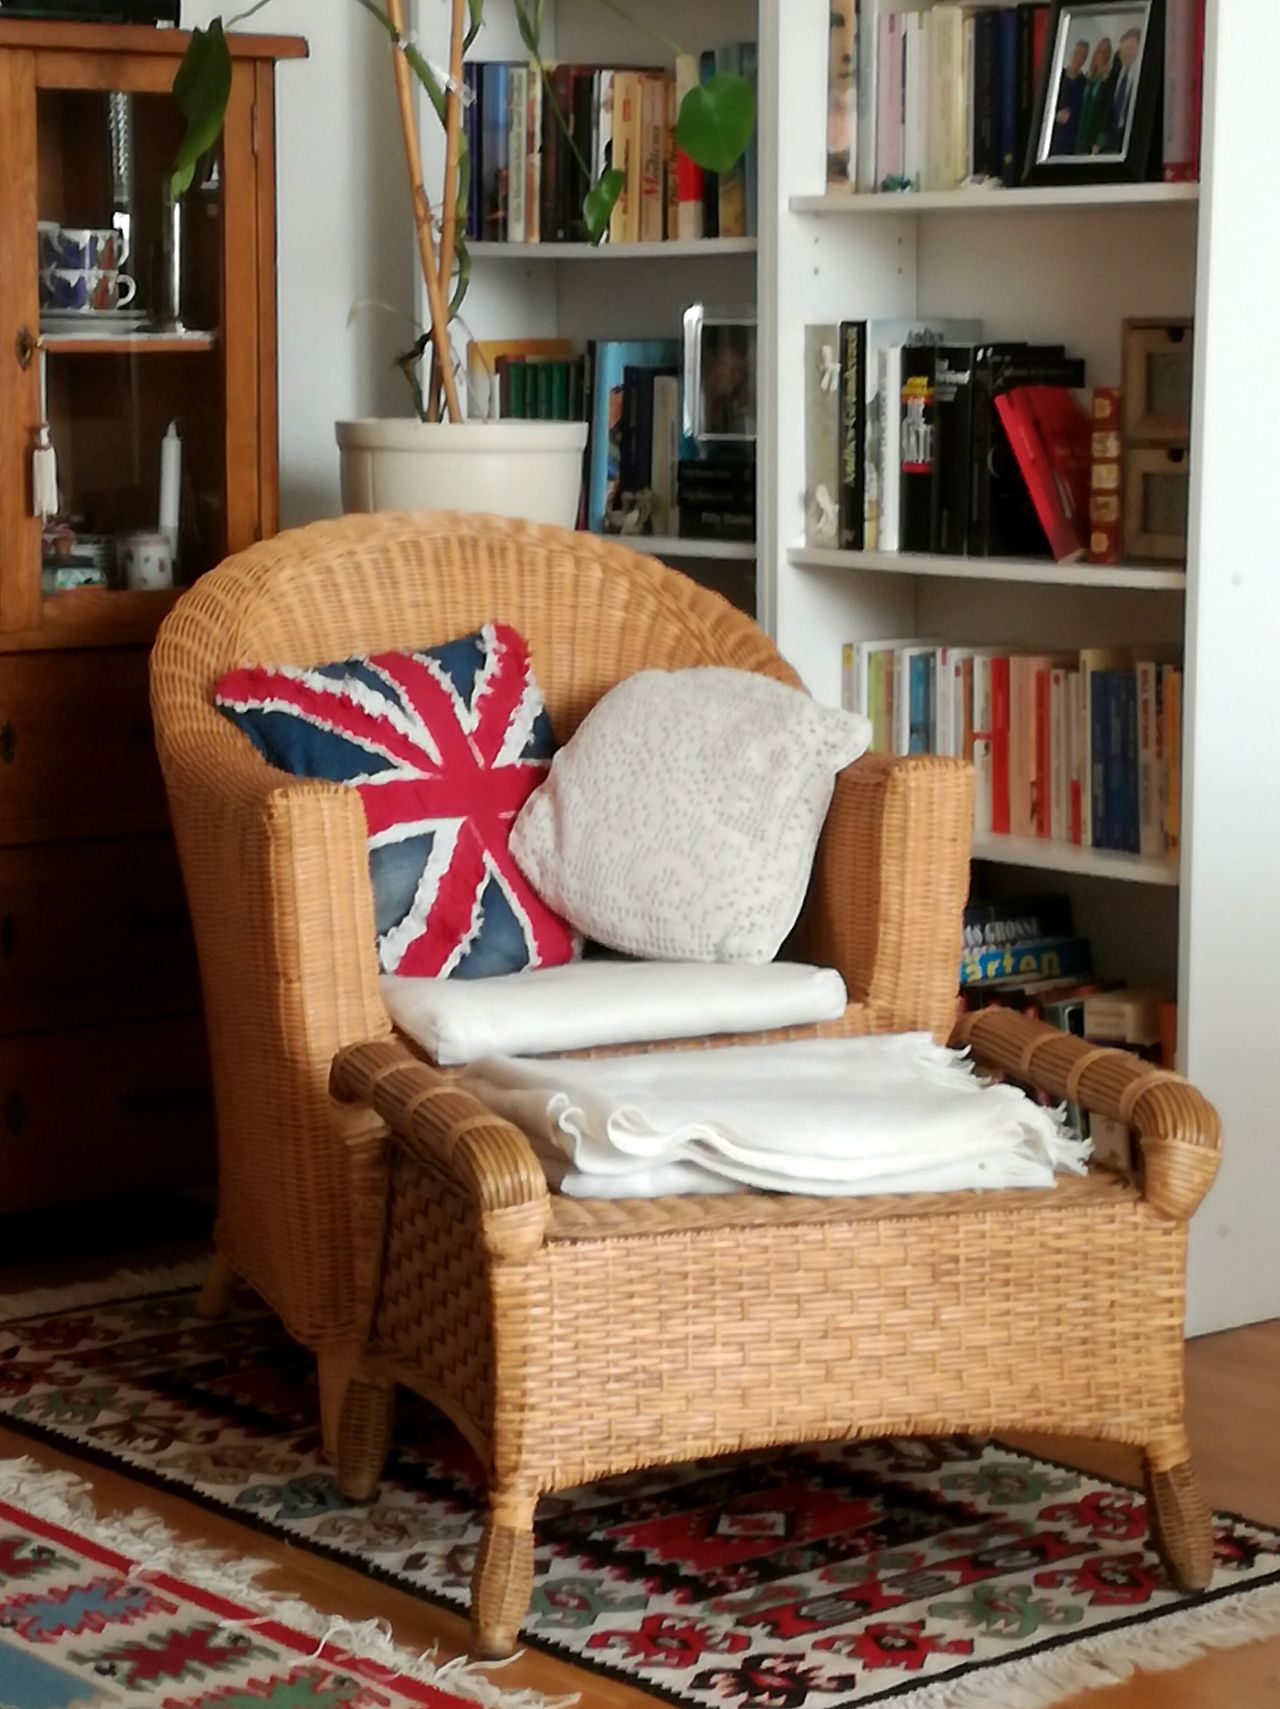 Urban life, Gwmuetlichkeit, home, seat, British Flag, room, flat, chair, city flat, corner, reading place, cocooning Indoors  No People Home Showcase Interior Relaxation Chair Bookshelf Armchair Home Interior Living Room Pillow Residential Building Neat Tidy Room Christmas Stocking Day